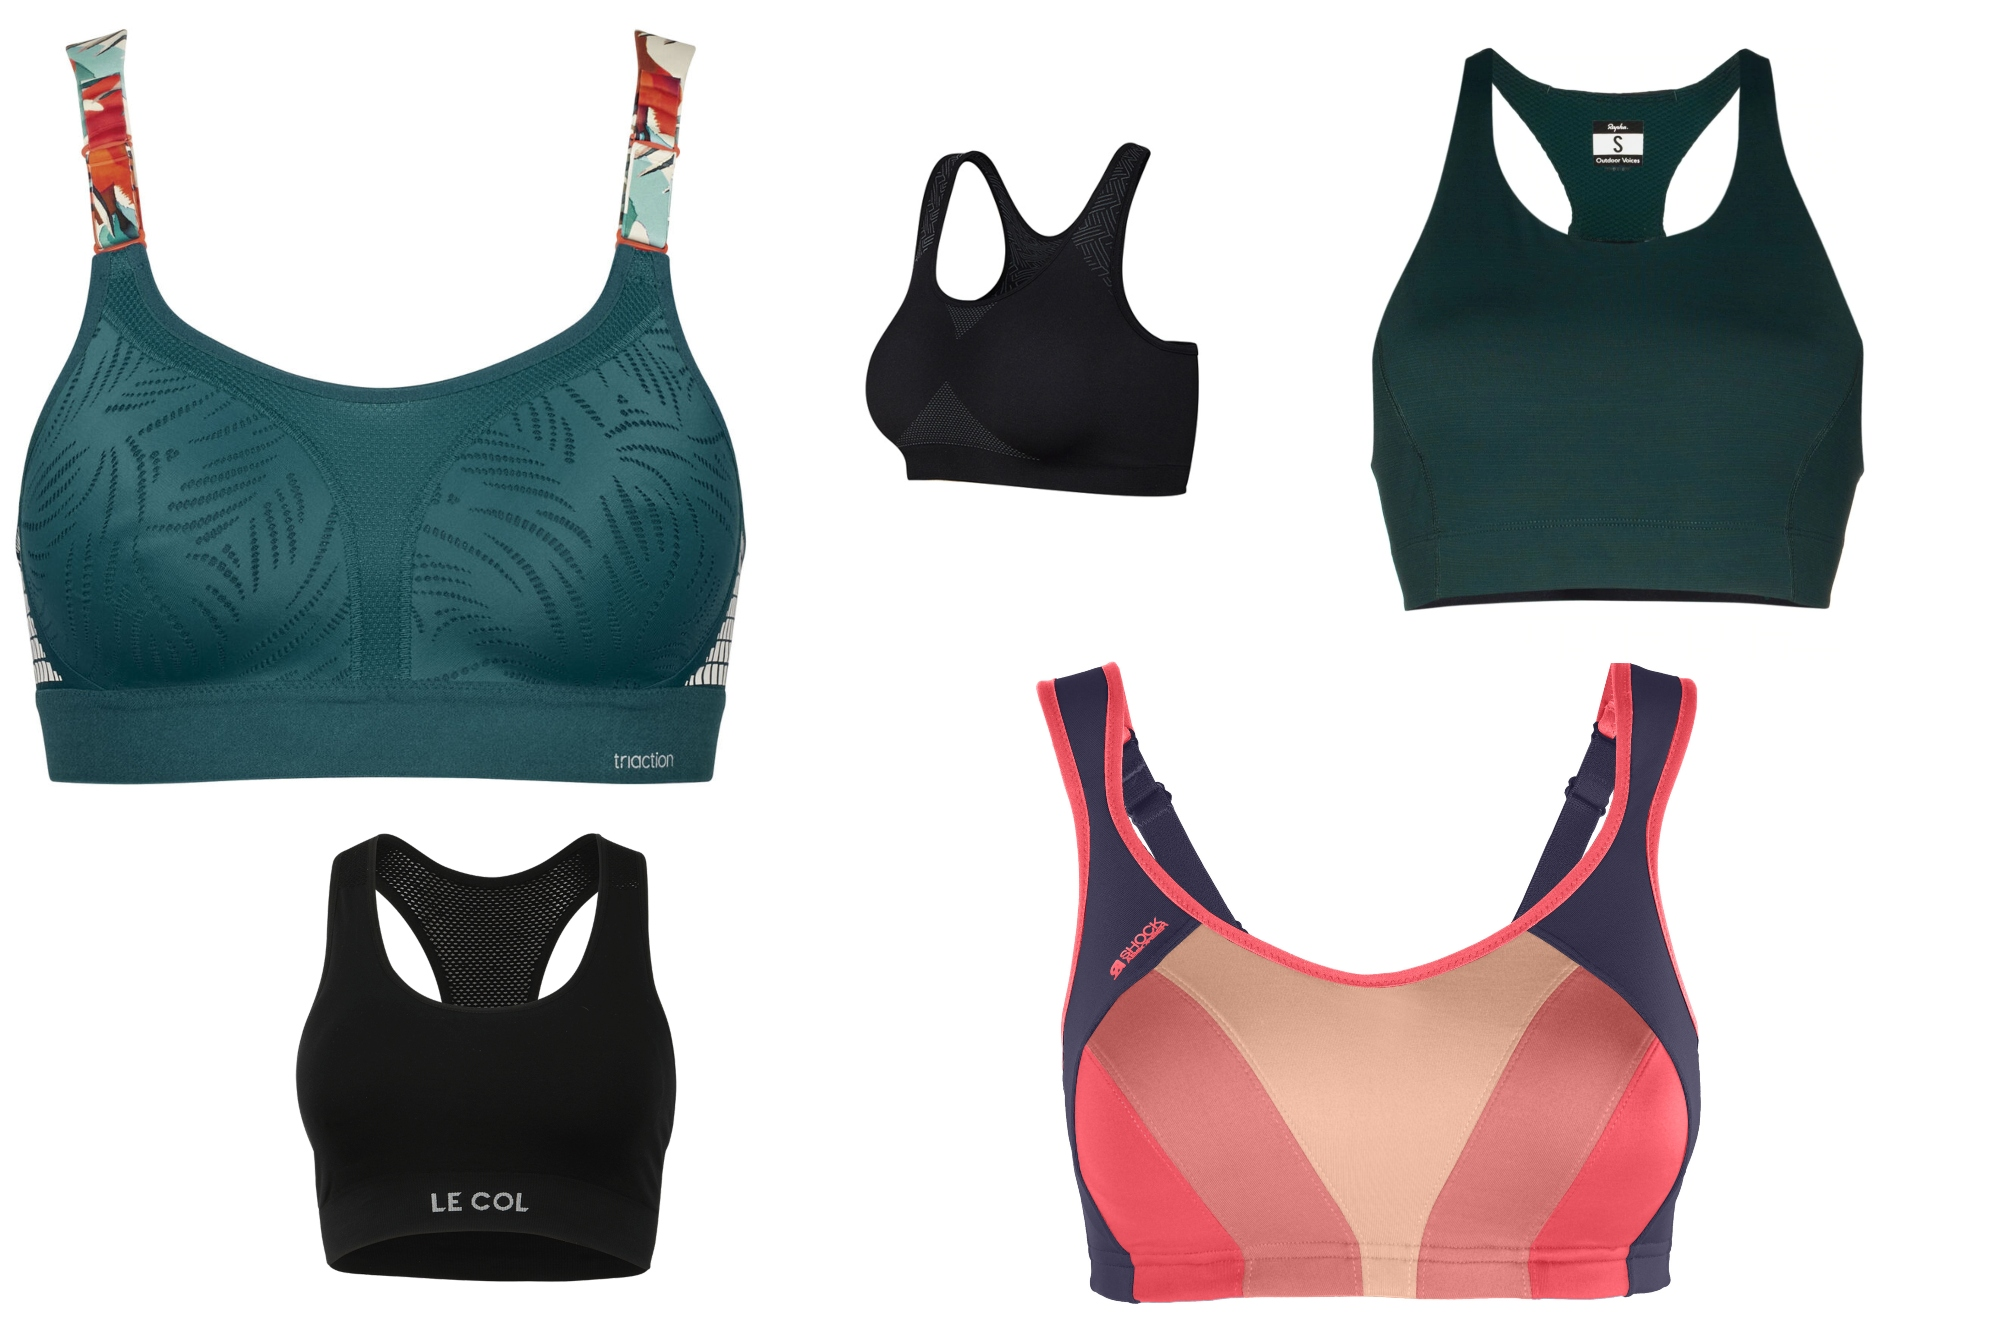 Best sports bras for cycling: the search for support and quick-drying properties